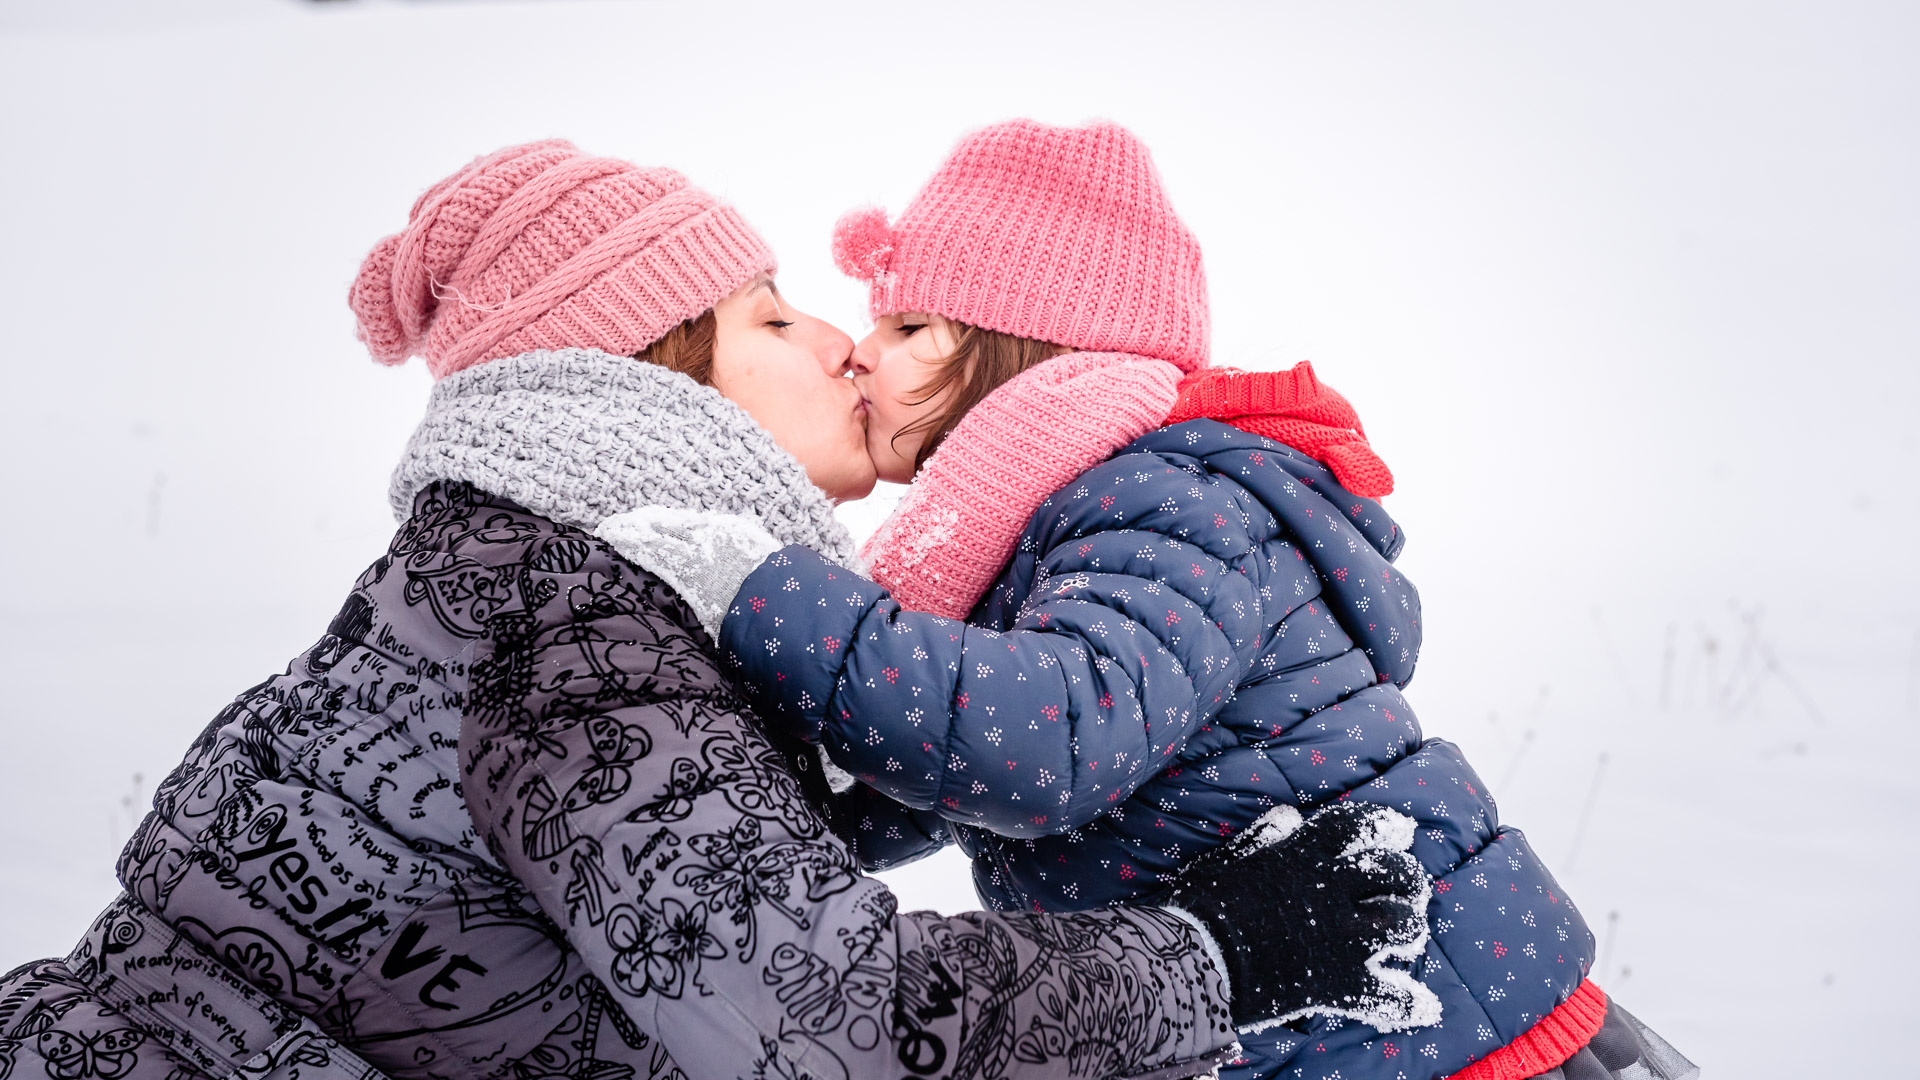 snow, mother daughter, child, pink hat, kiss, hug